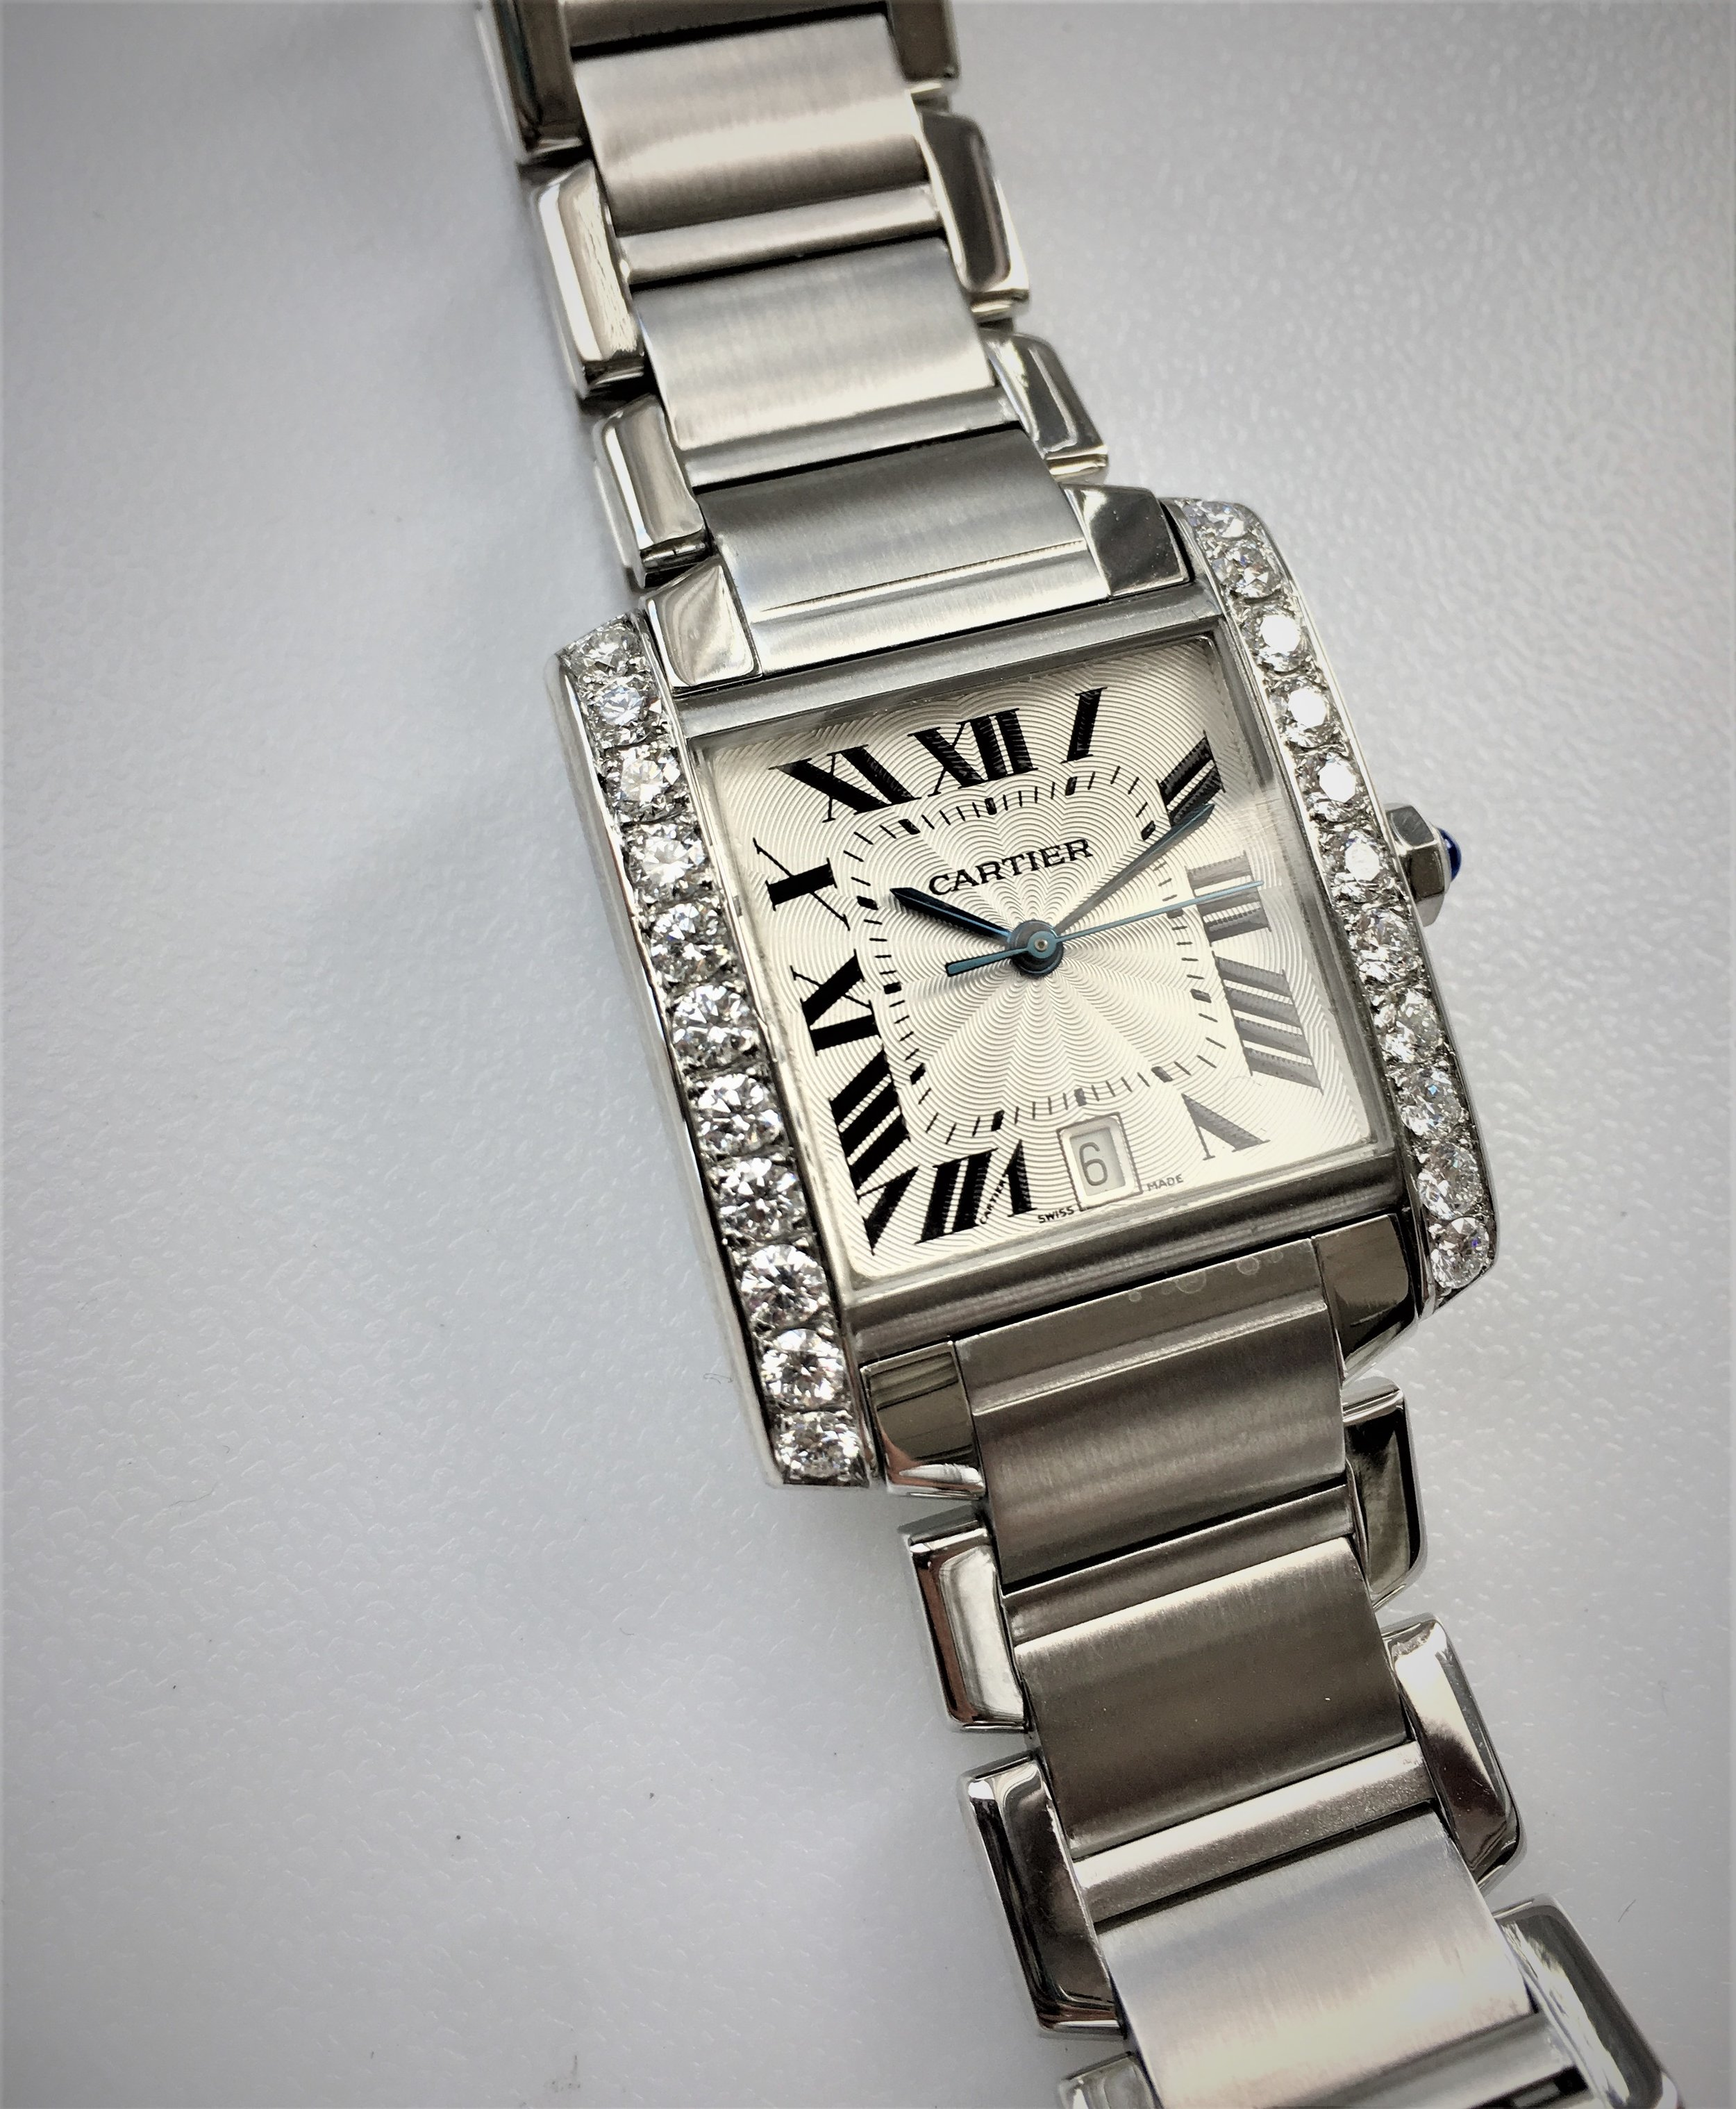 Watch Cartier Diamond . Tampa jewelry store watch repair